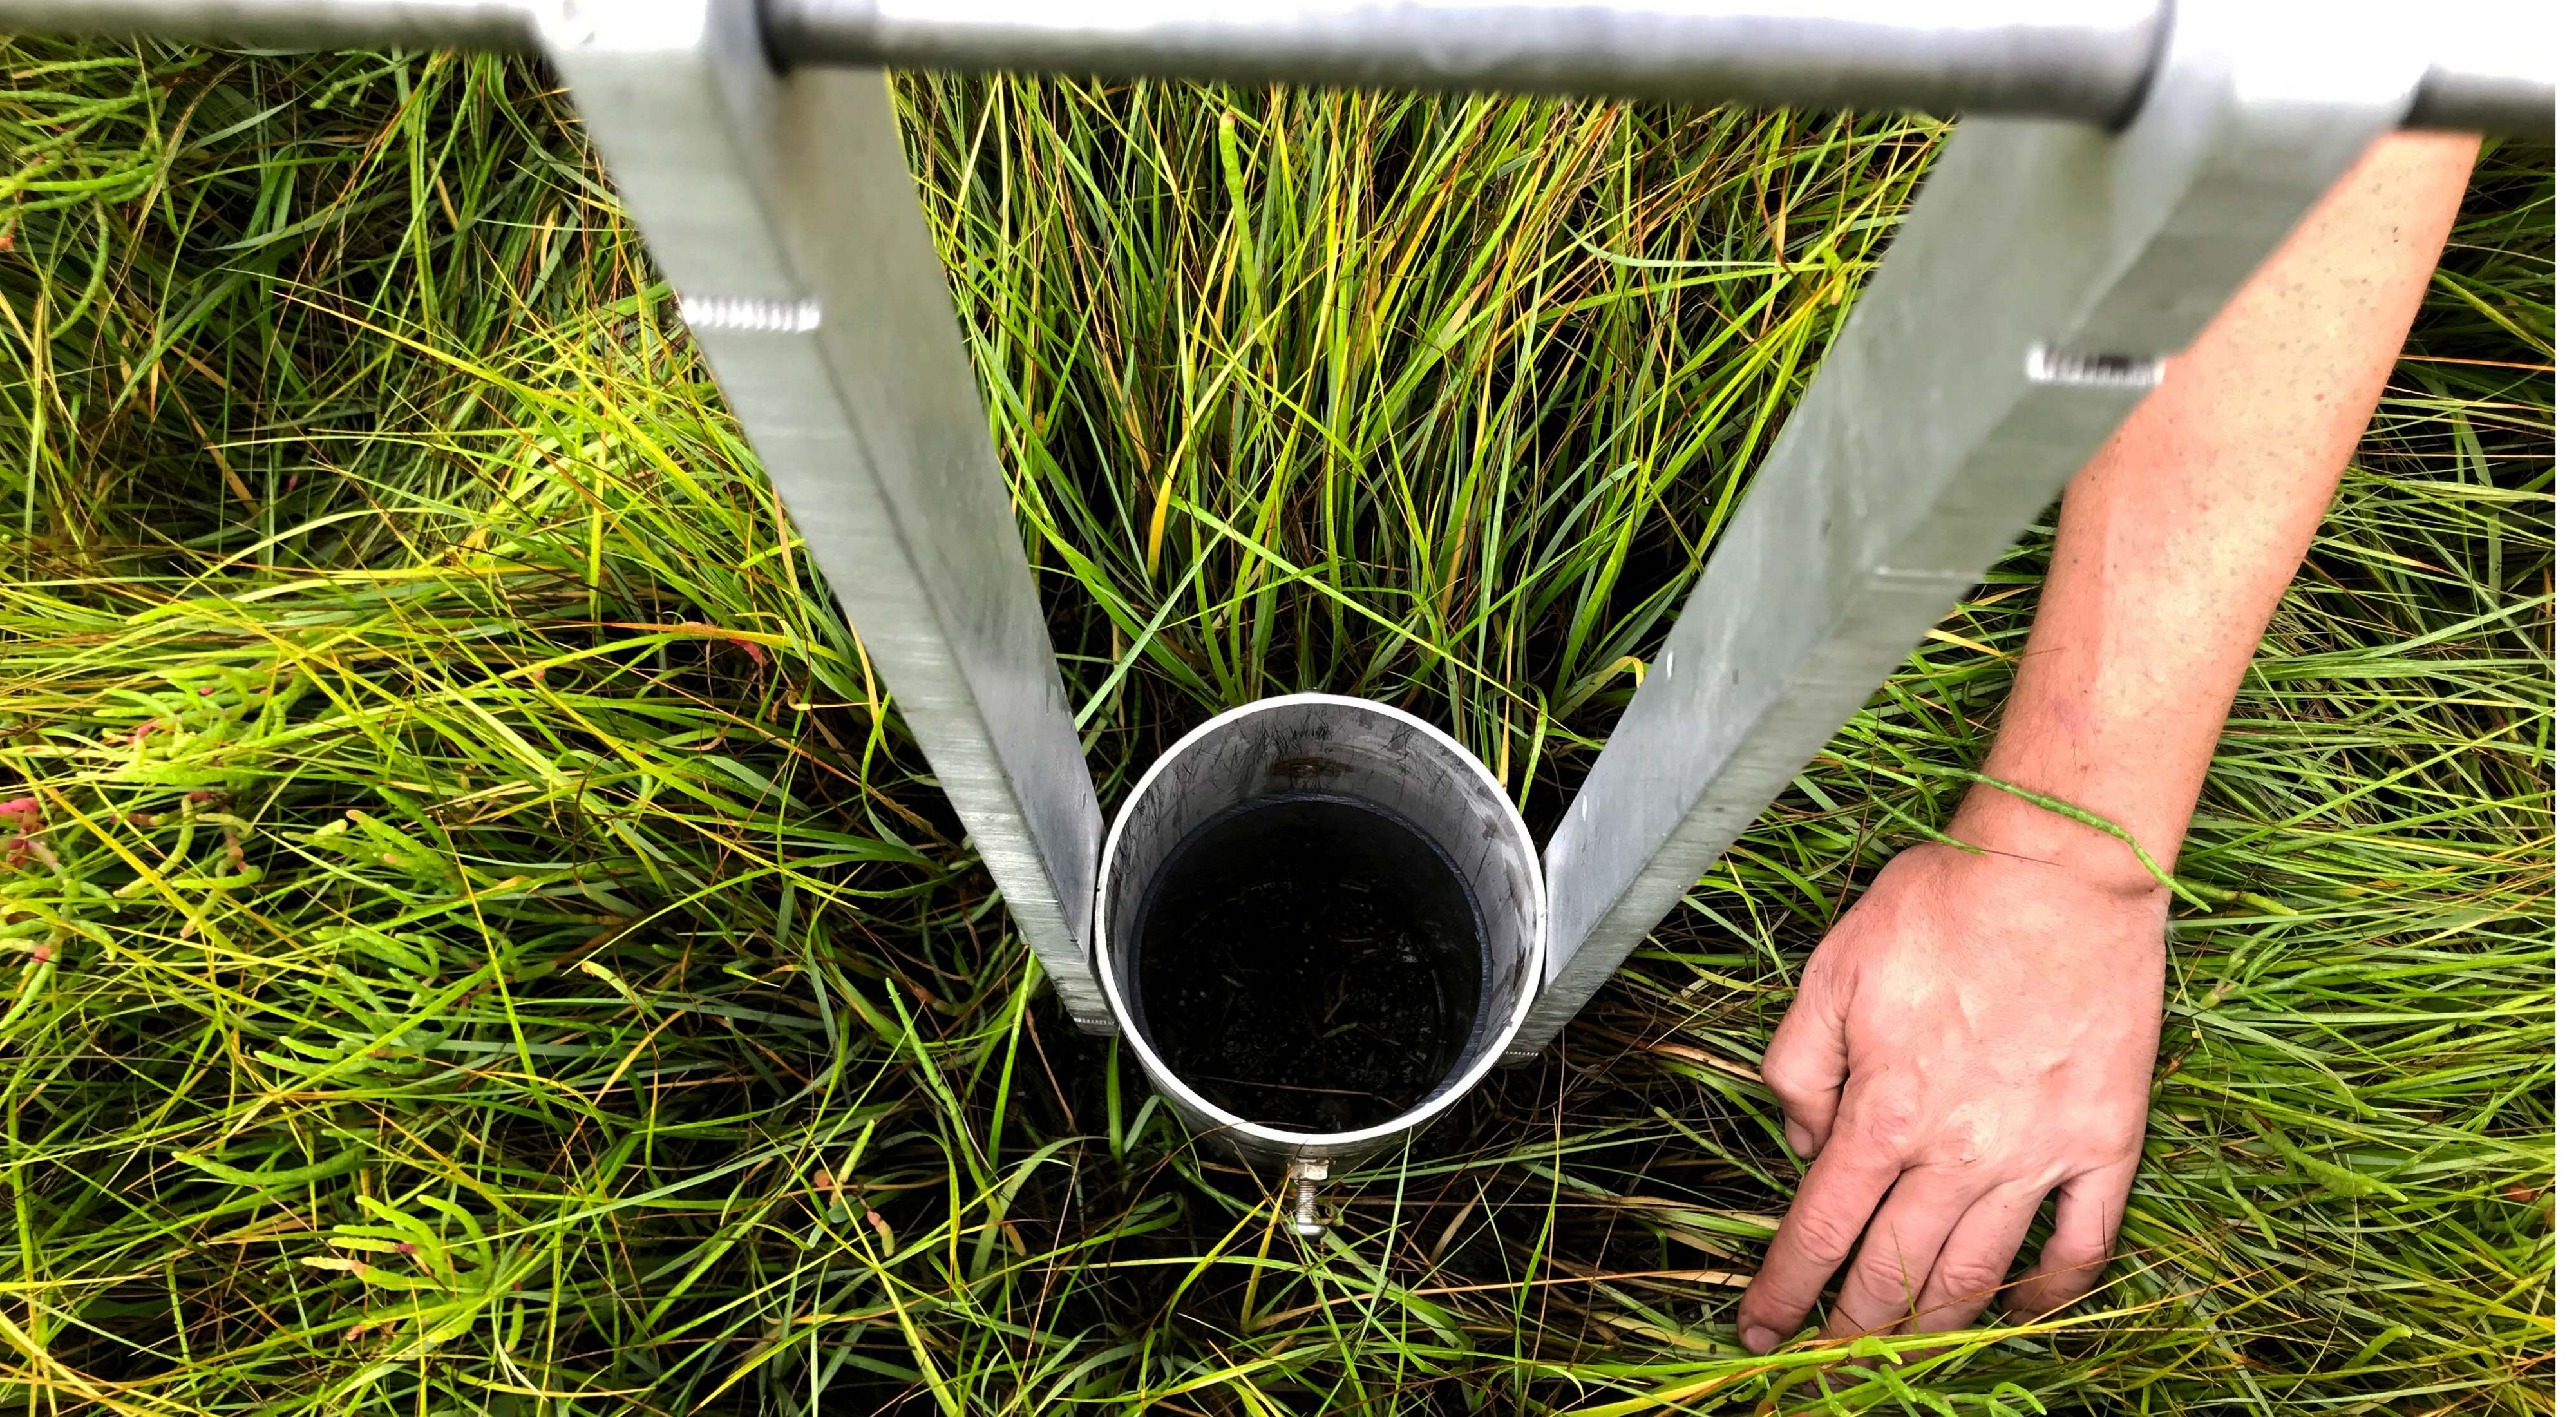 scientists and partners are using an unlikely tool to restore the health of Long Island salt marshes. Here, taking a core to study via CT scan.